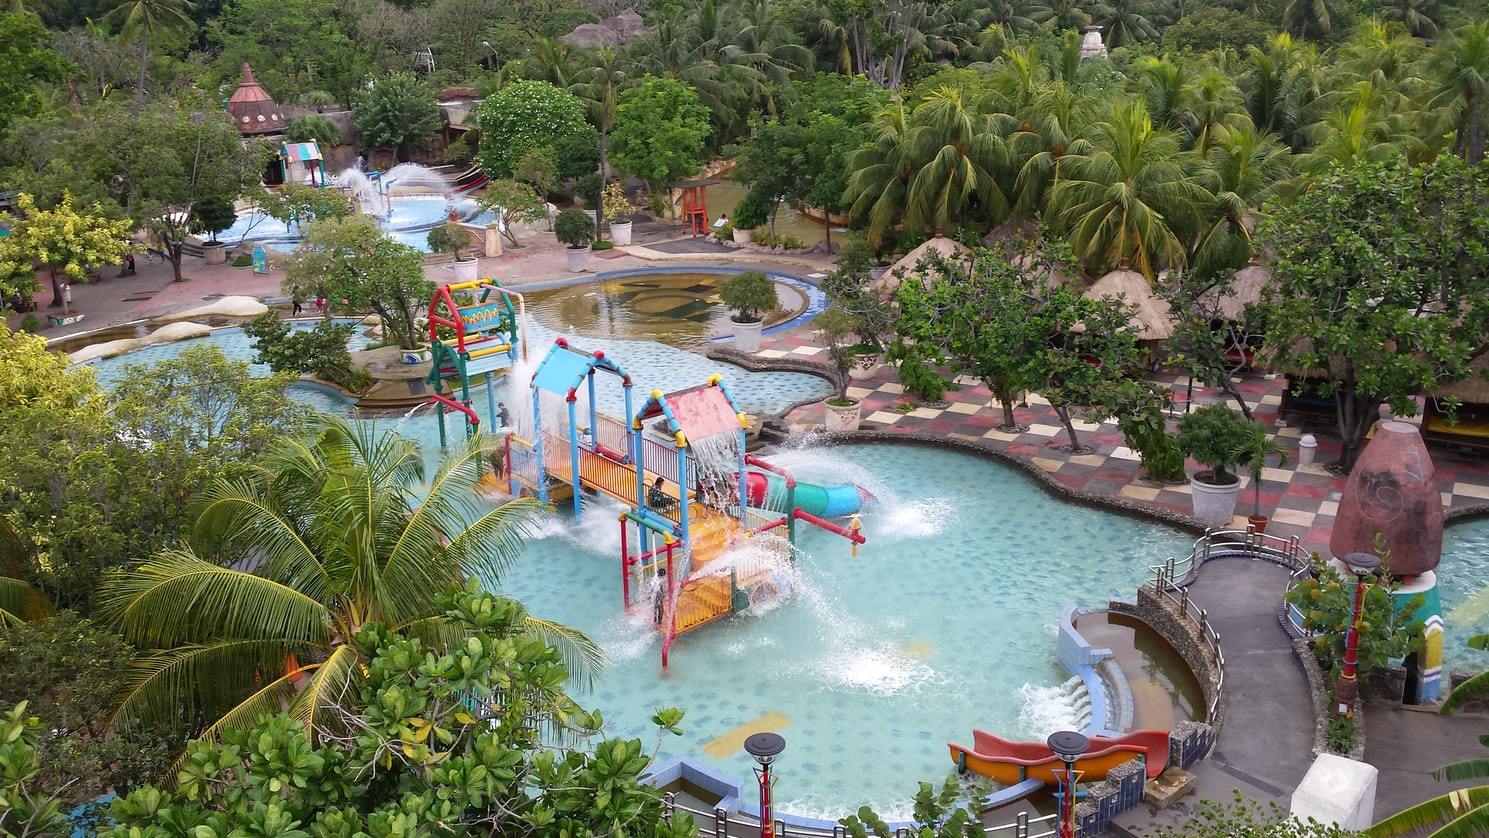 Aerial view of a swimming pool with a water slide